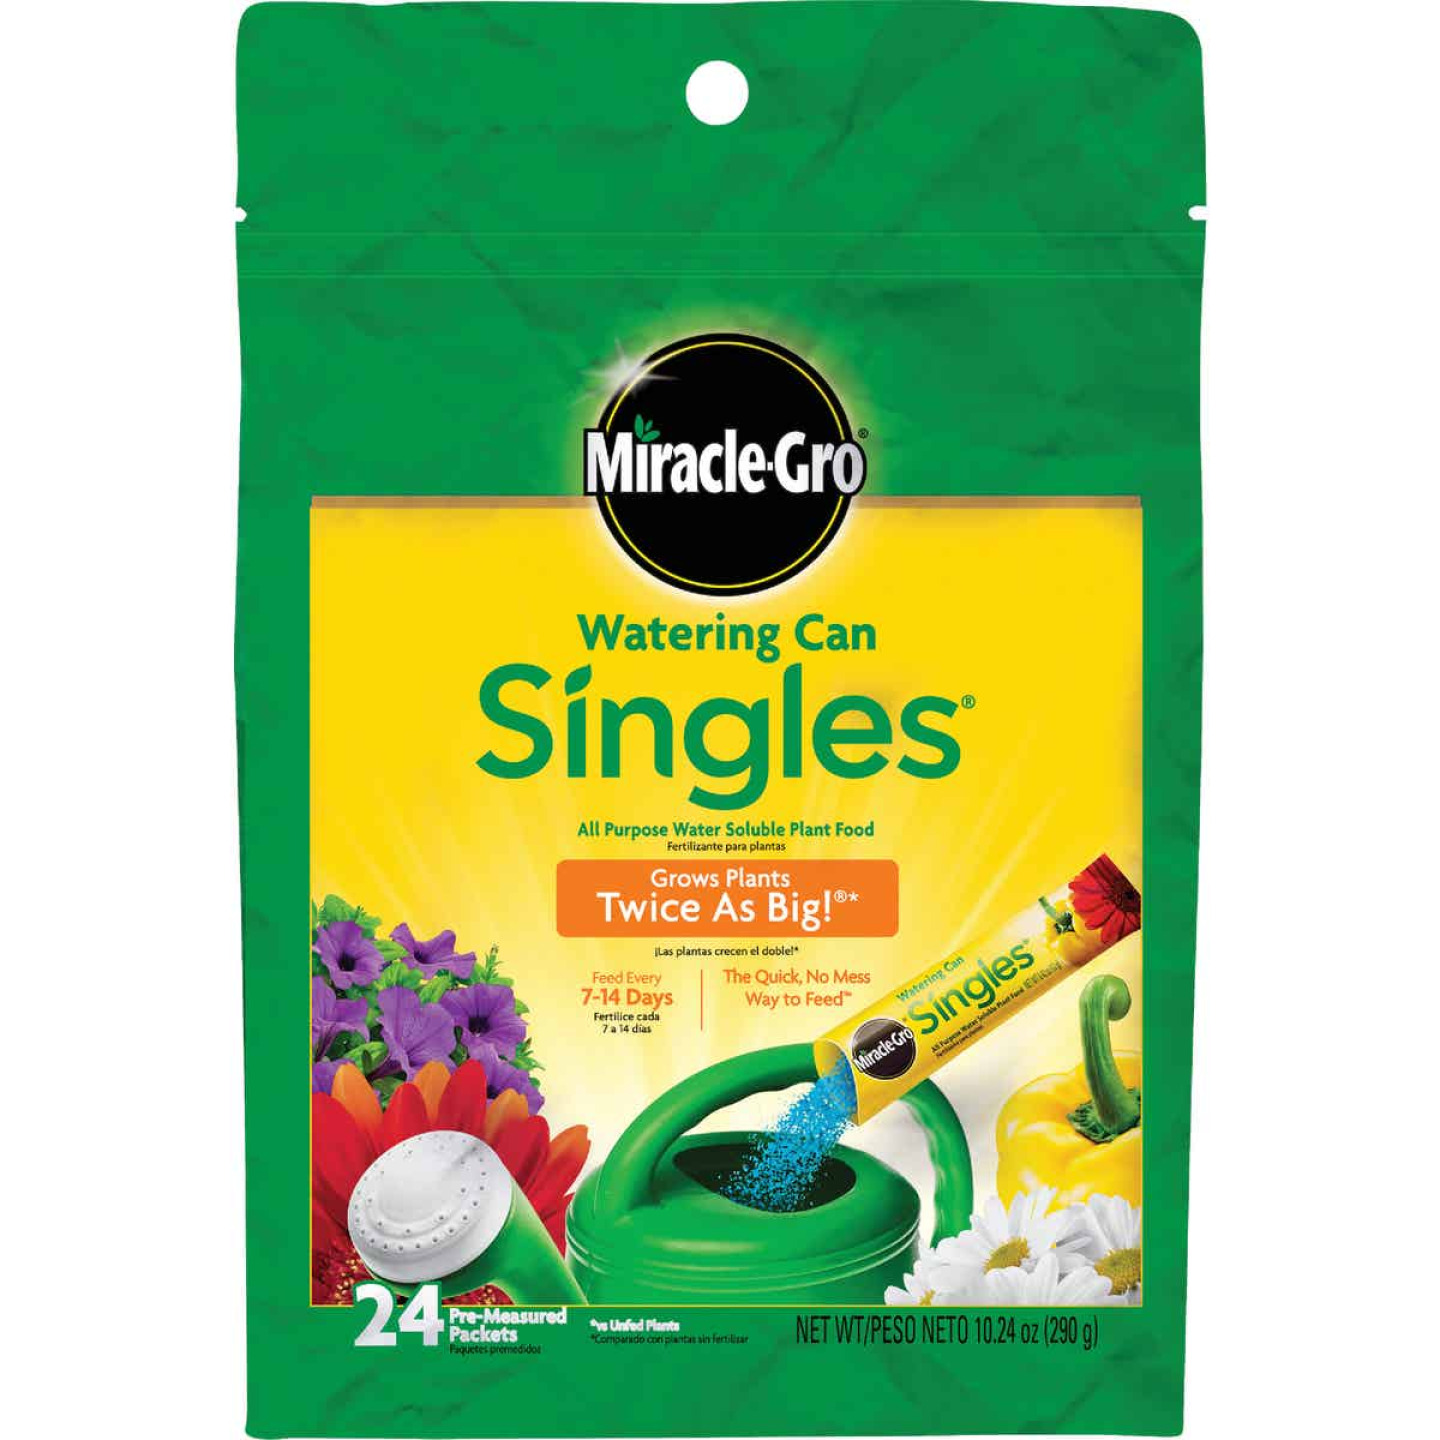 Miracle-Gro Watering Can Singles 24-8-16 Dry Plant Food (24-Count) Image 1